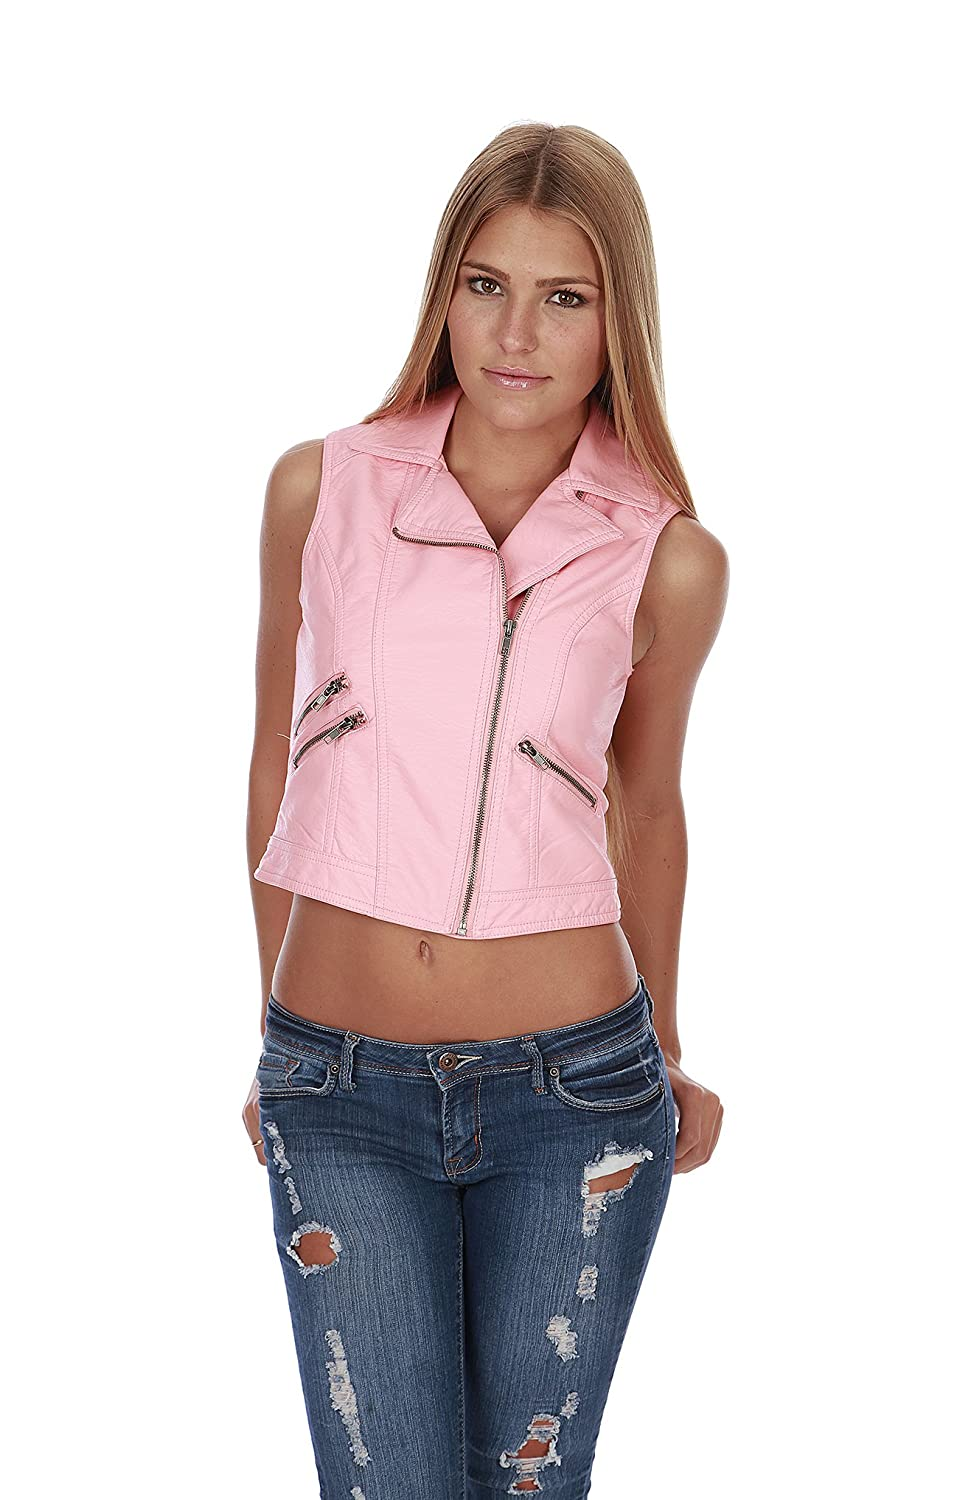 Hollywood Star Fashion Women's Leather Jacket Zip Zipper Front Vest With Collar J650